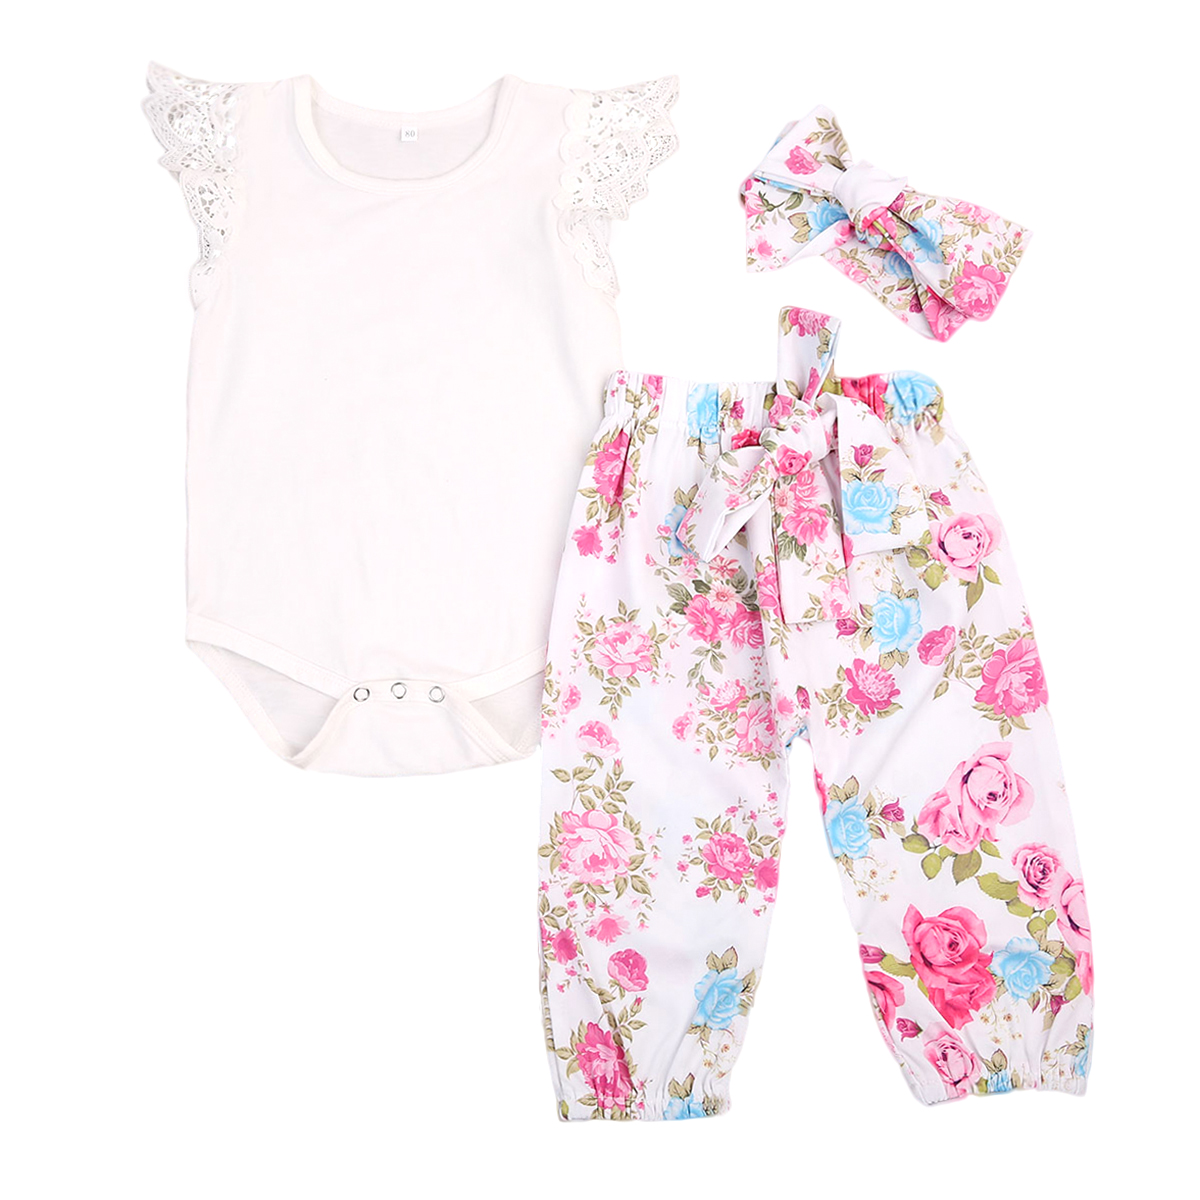 US Stock Floral Newborn Baby Girls Lace Romper Pants Headband Outfit Set Clothes Infant Toddler Girl Brief Clothing Set Playsuit pink newborn infant baby girls clothes short sleeve bodysuit striped leg warmers headband 3pcs outfit bebek clothing set 0 18m